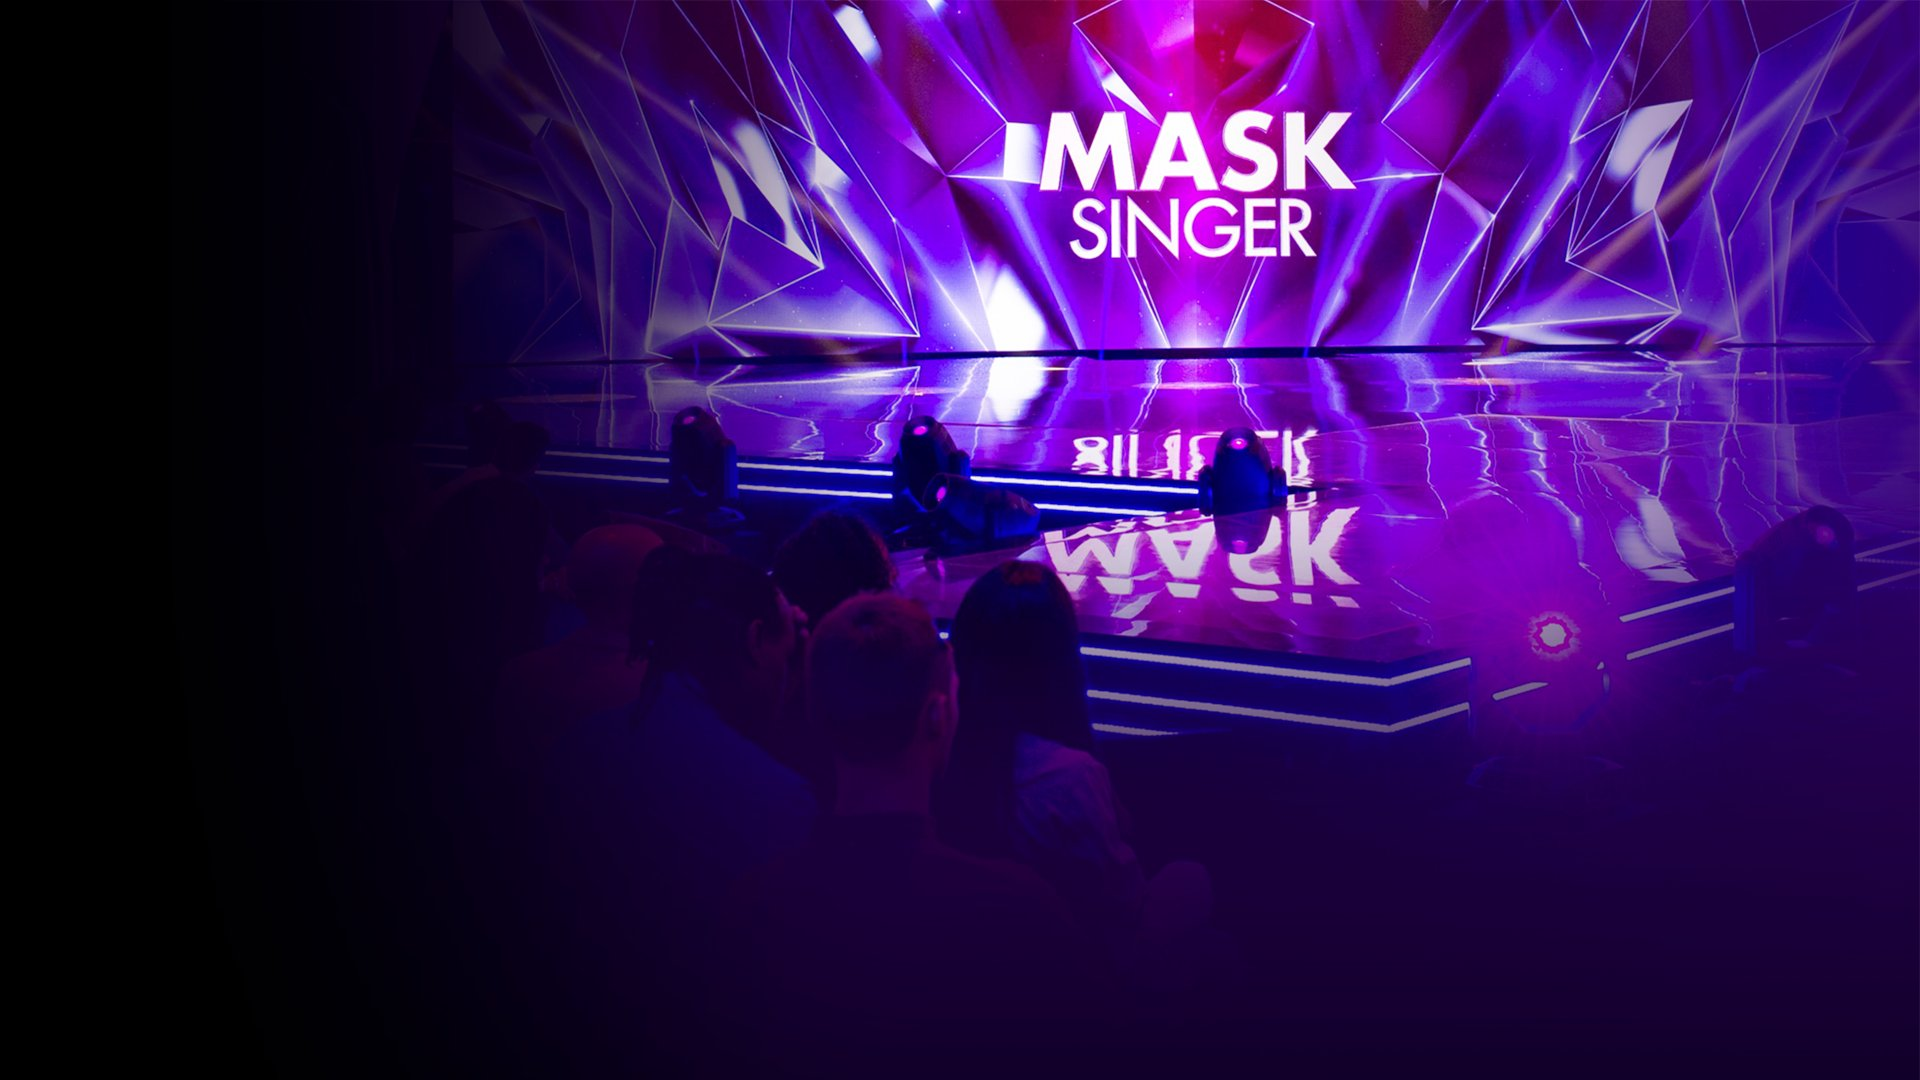 fond Mask Singer - Manchot chante « On the floor » de Jennifer Lopez